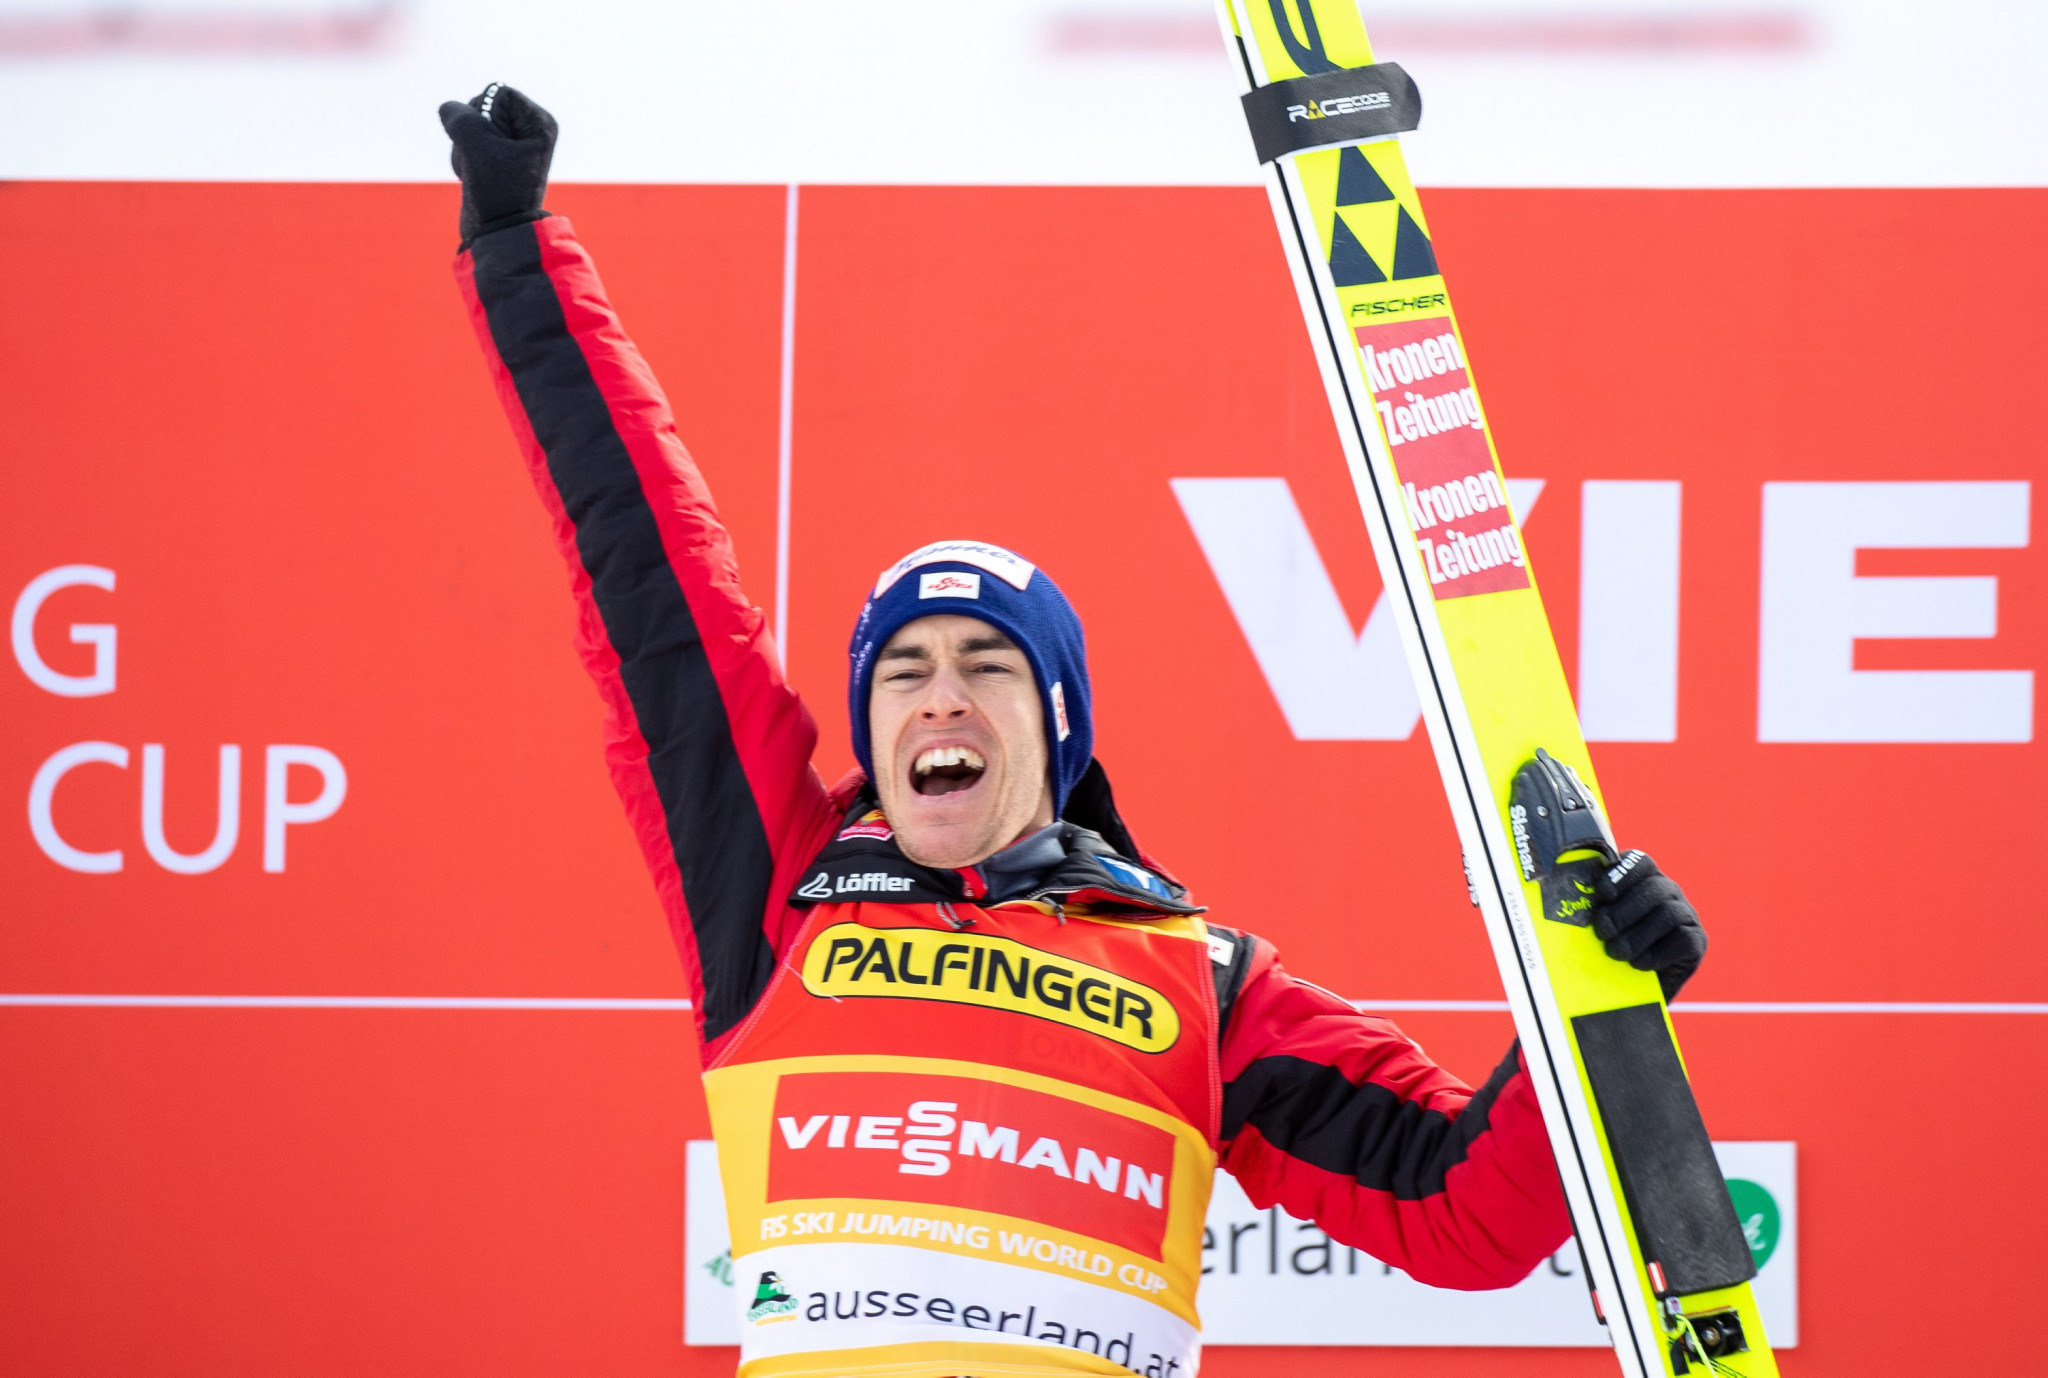 Kraft wins 20th Ski Jumping World Cup event to extend overall lead in Râșnov